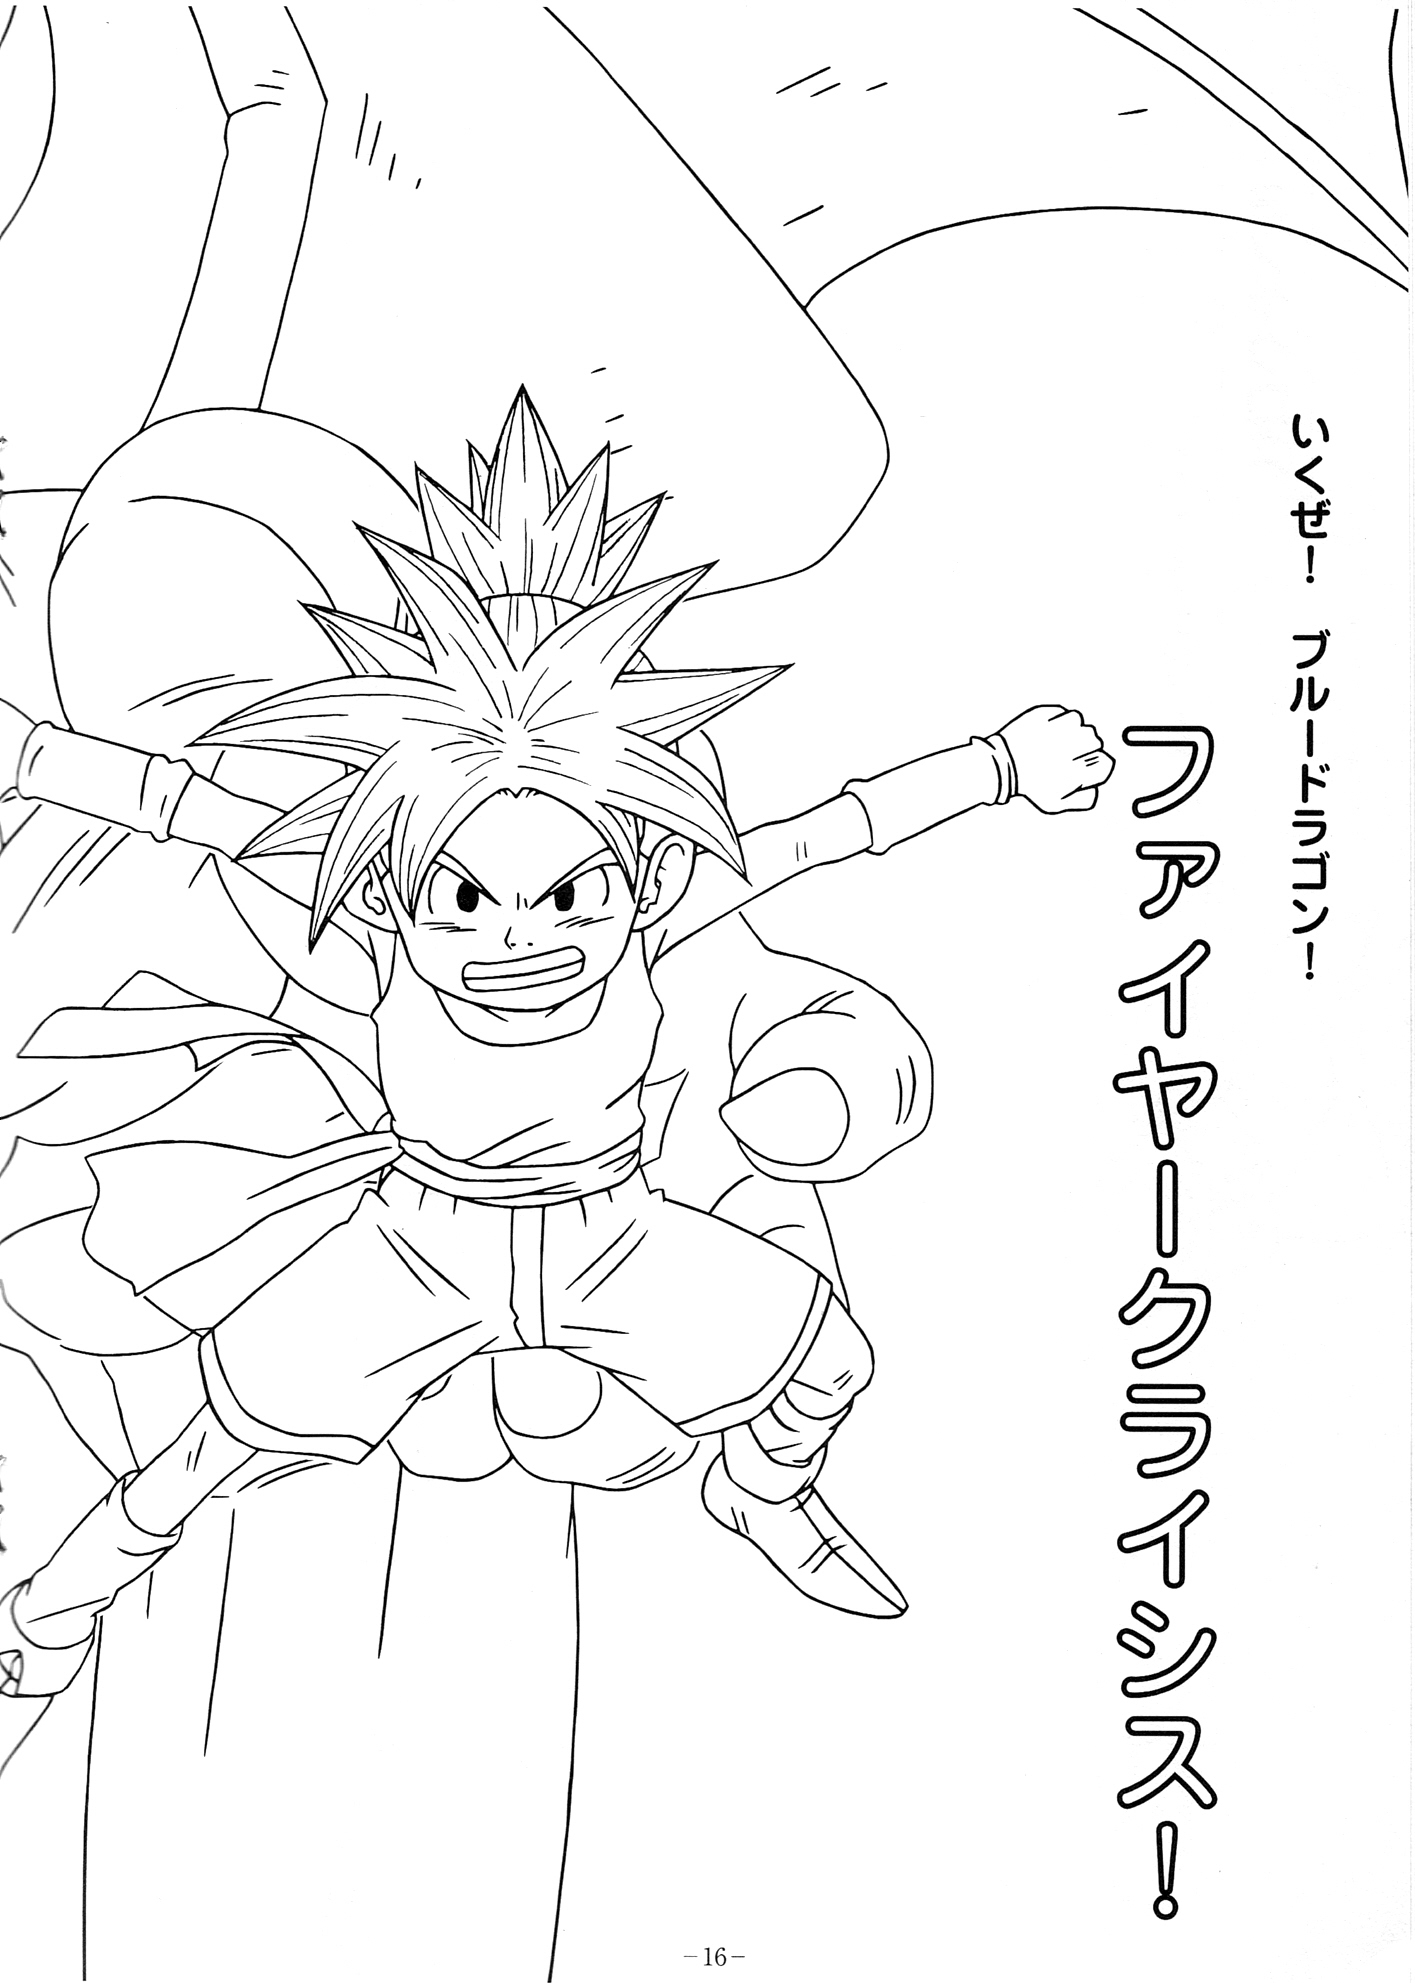 blue dragon coloring pages - photo#36